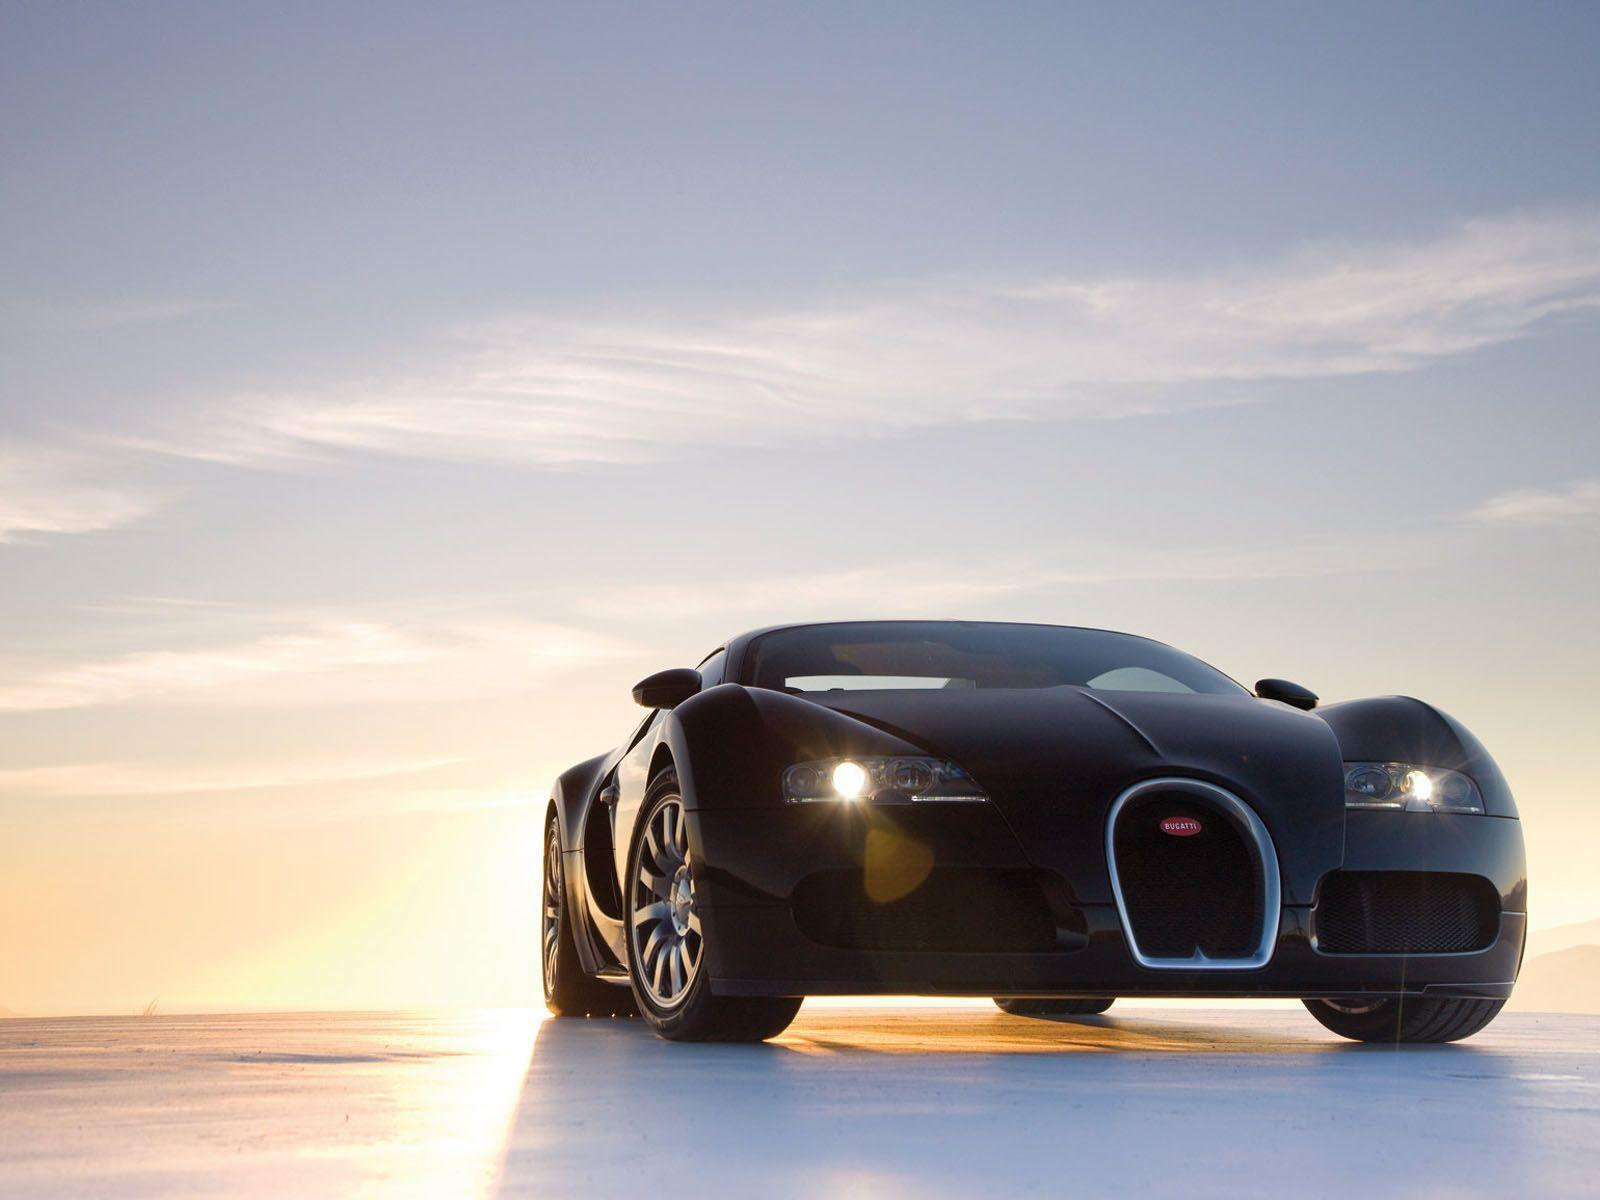 Bugatti Veyron Super Sport Car Wallpaper #4356 Wallpaper ...